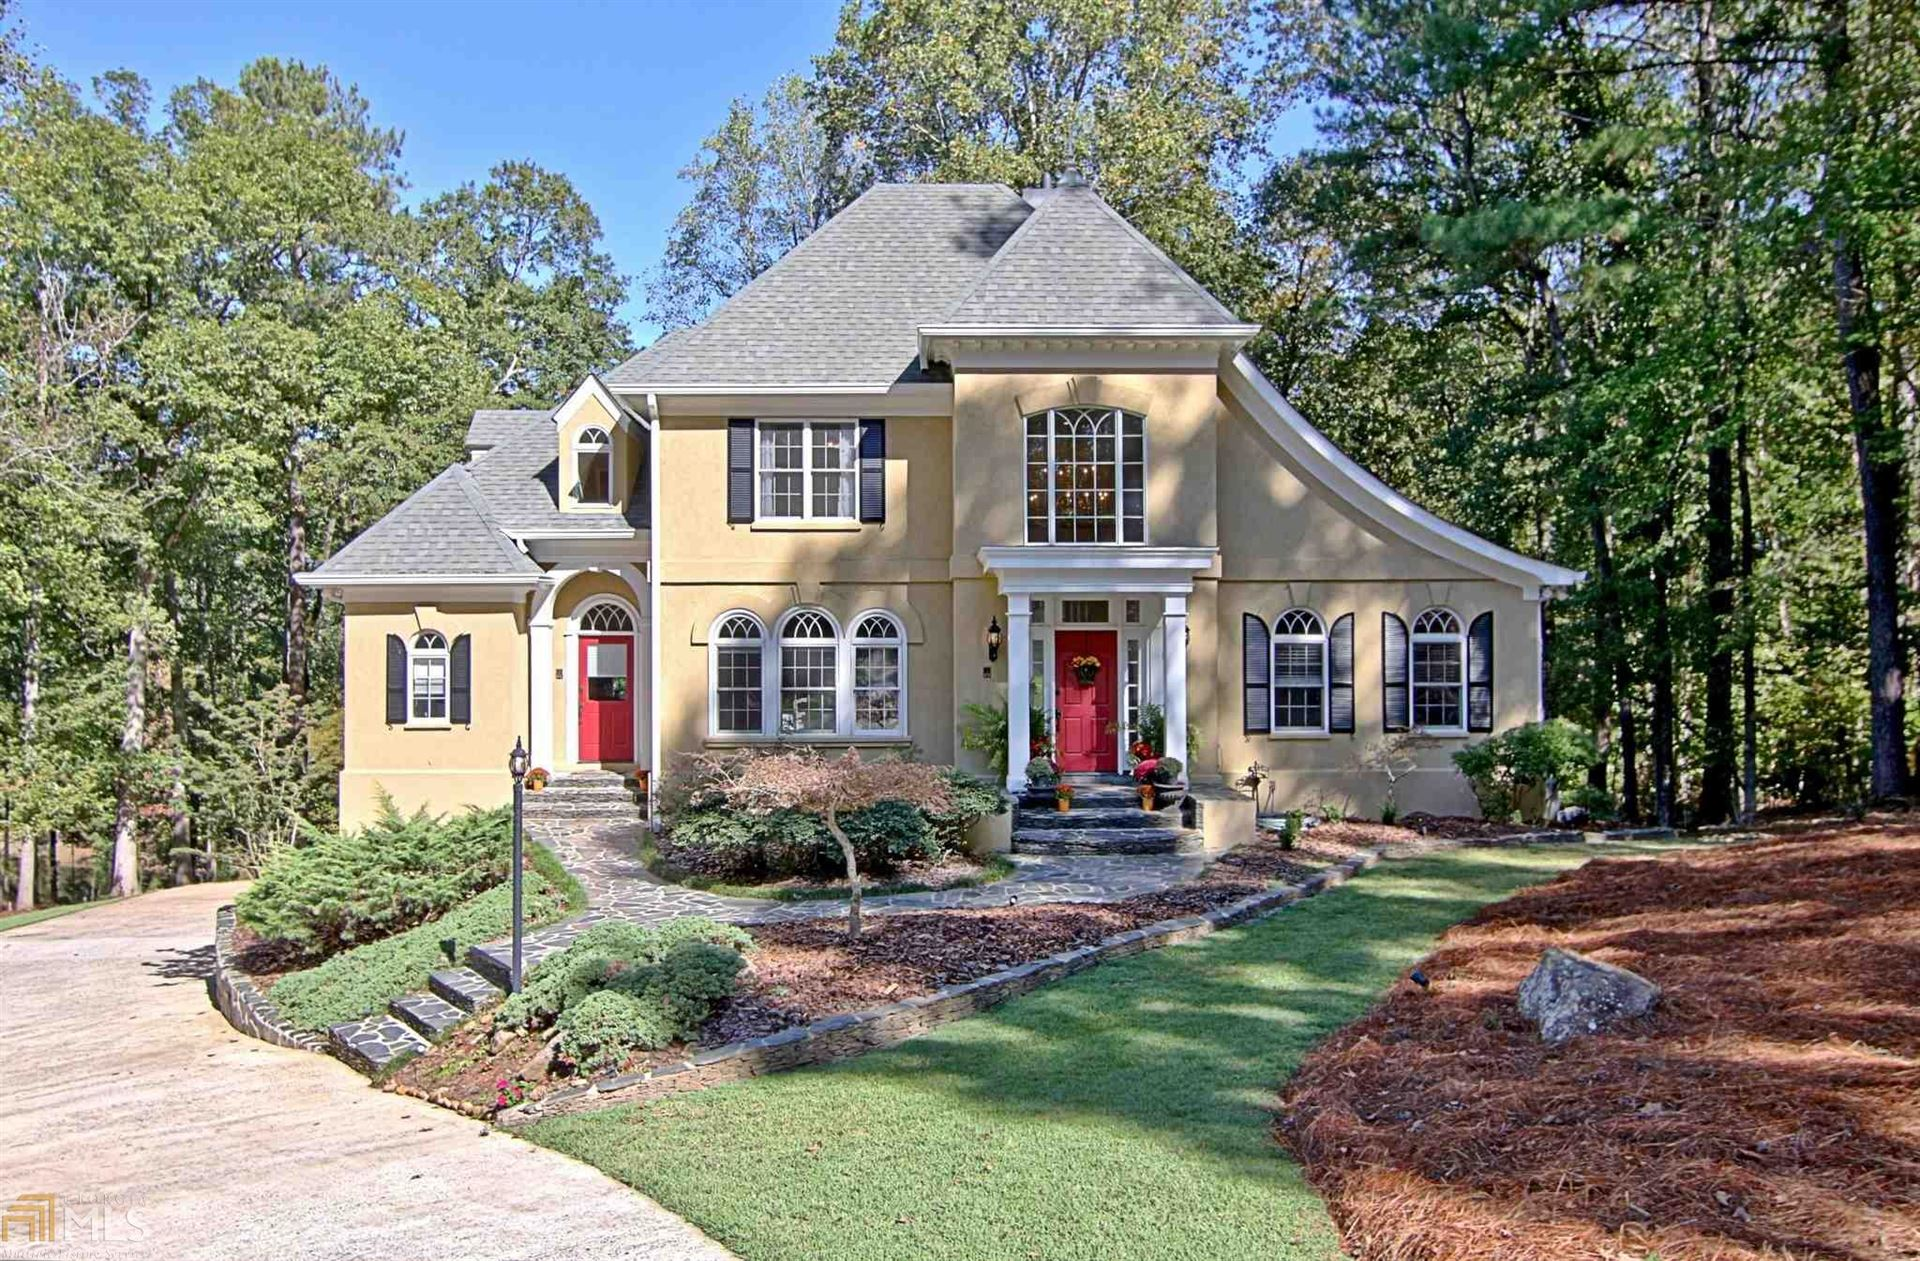 1002 Mickleton Ln, Peachtree City, GA 30269 - #: 8892642